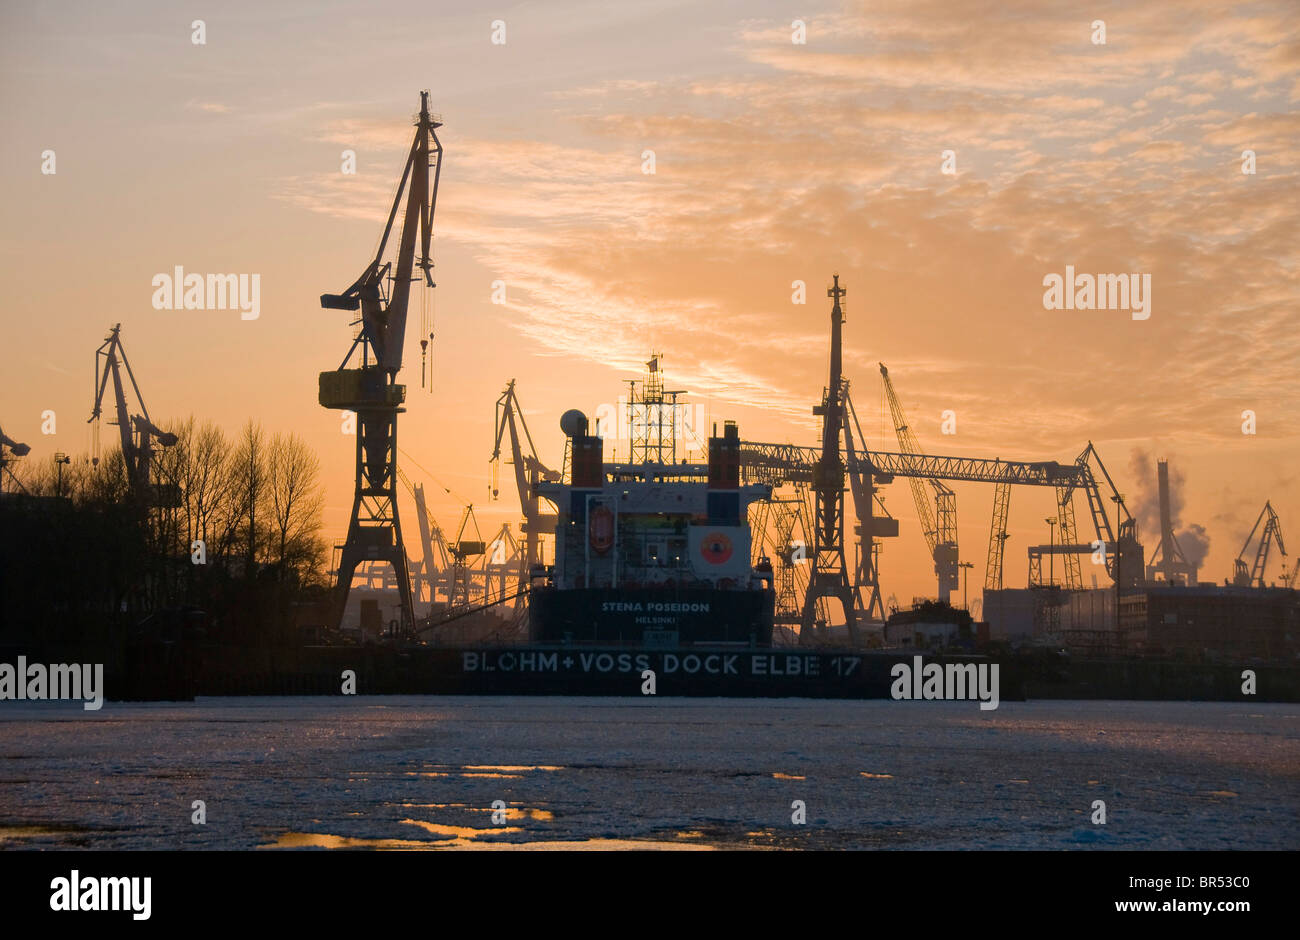 Ship in the Elbe 17 dry dock of the Blohm + Voss shipyard in Hamburg, Germany, Europe - Stock Image